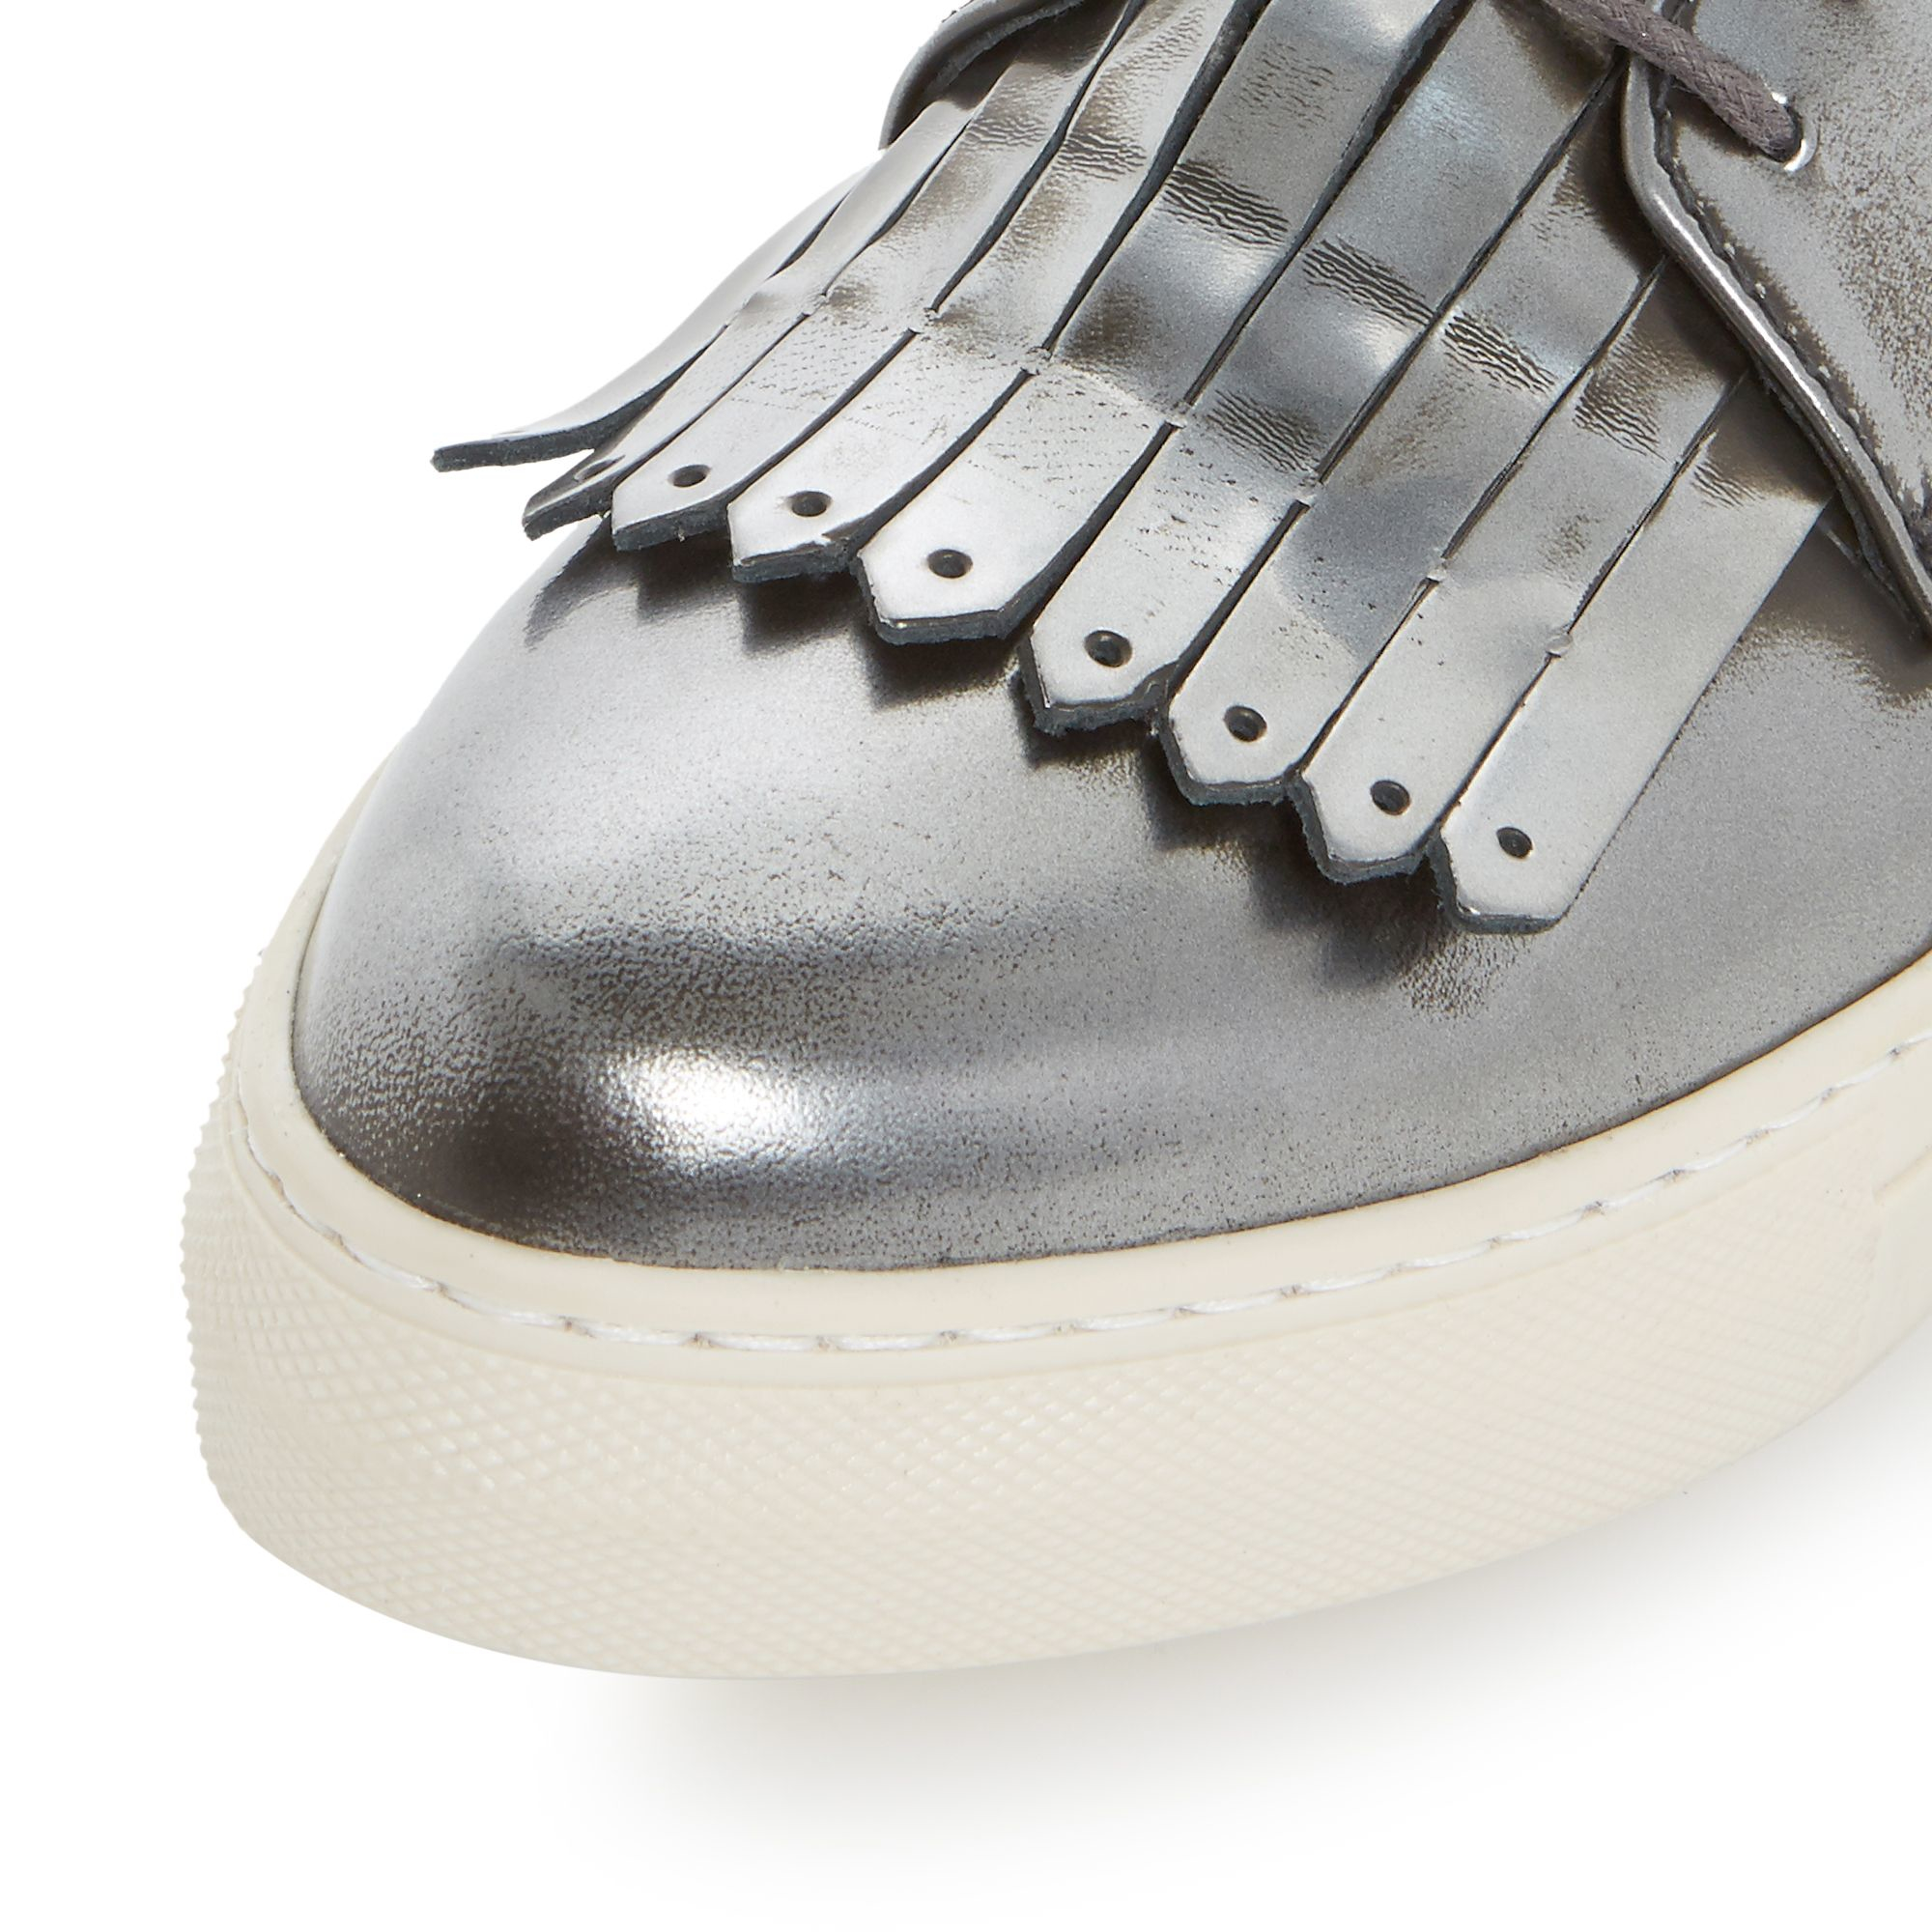 Dune Black Leather Eddy Fringe Detail Lace Up Trainers in Pewter (Metallic)